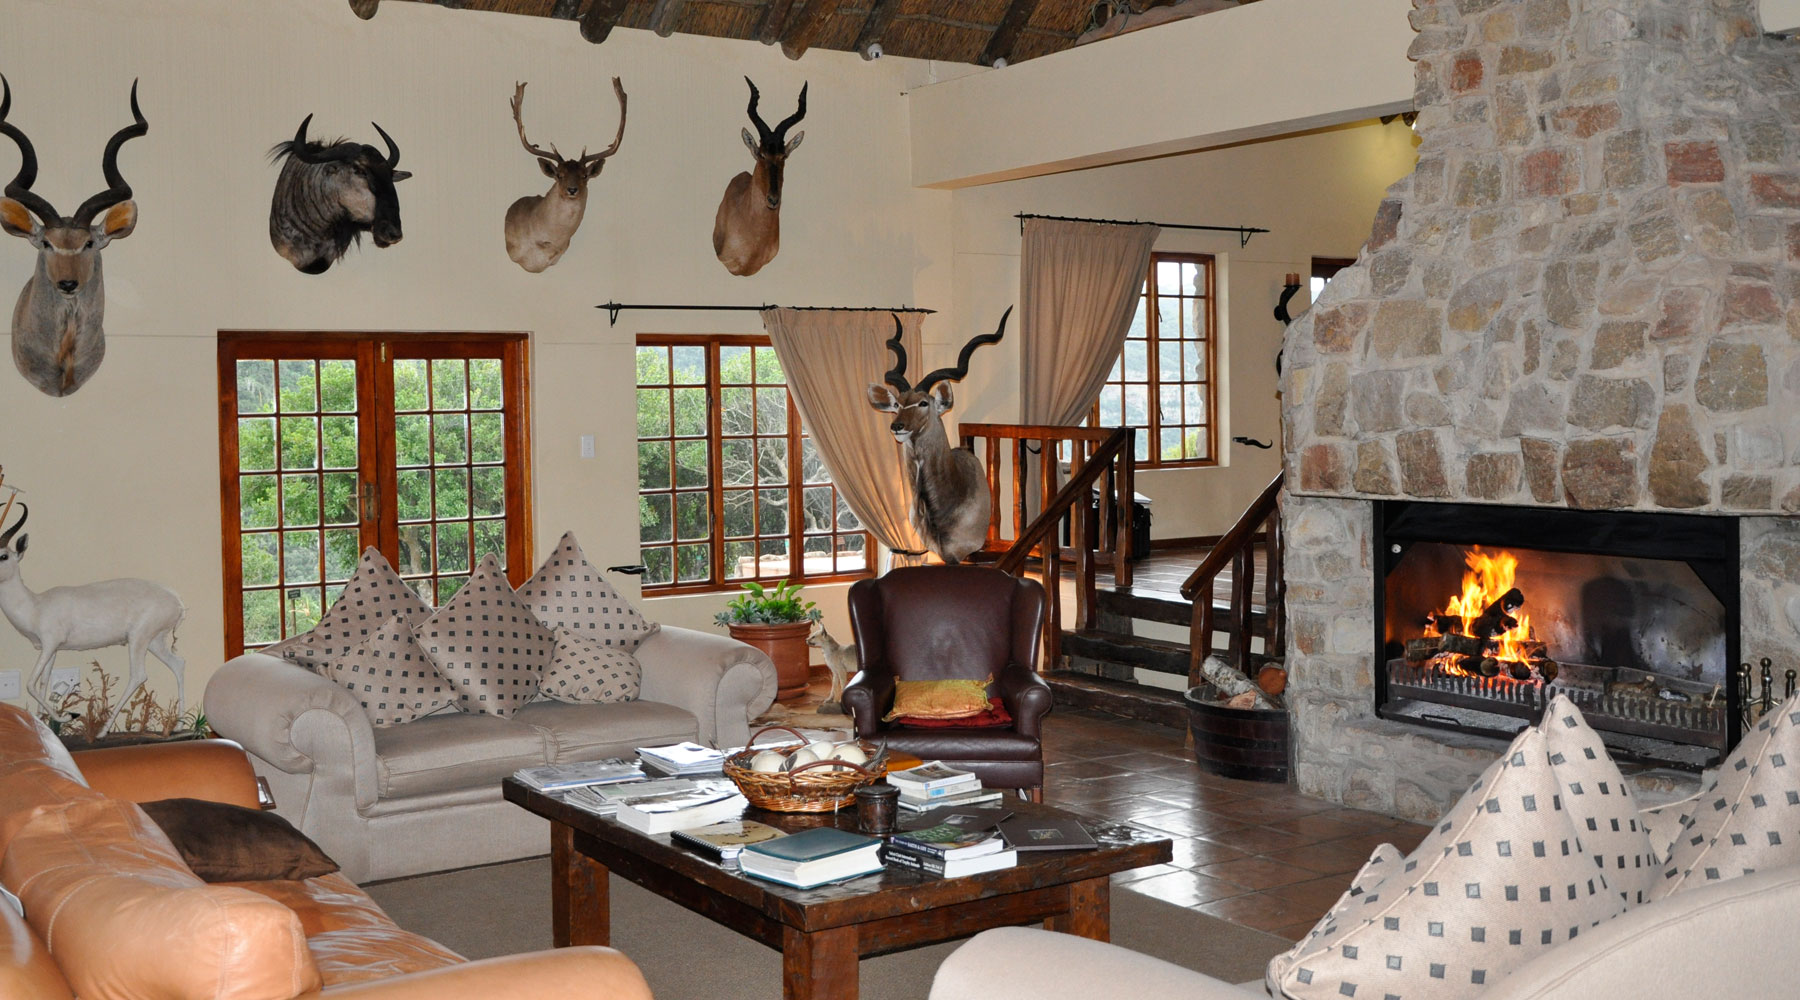 Kikuyu Lodge Game Reserve Owned by Lawrence A. Franks and Managed by Harry Fourie